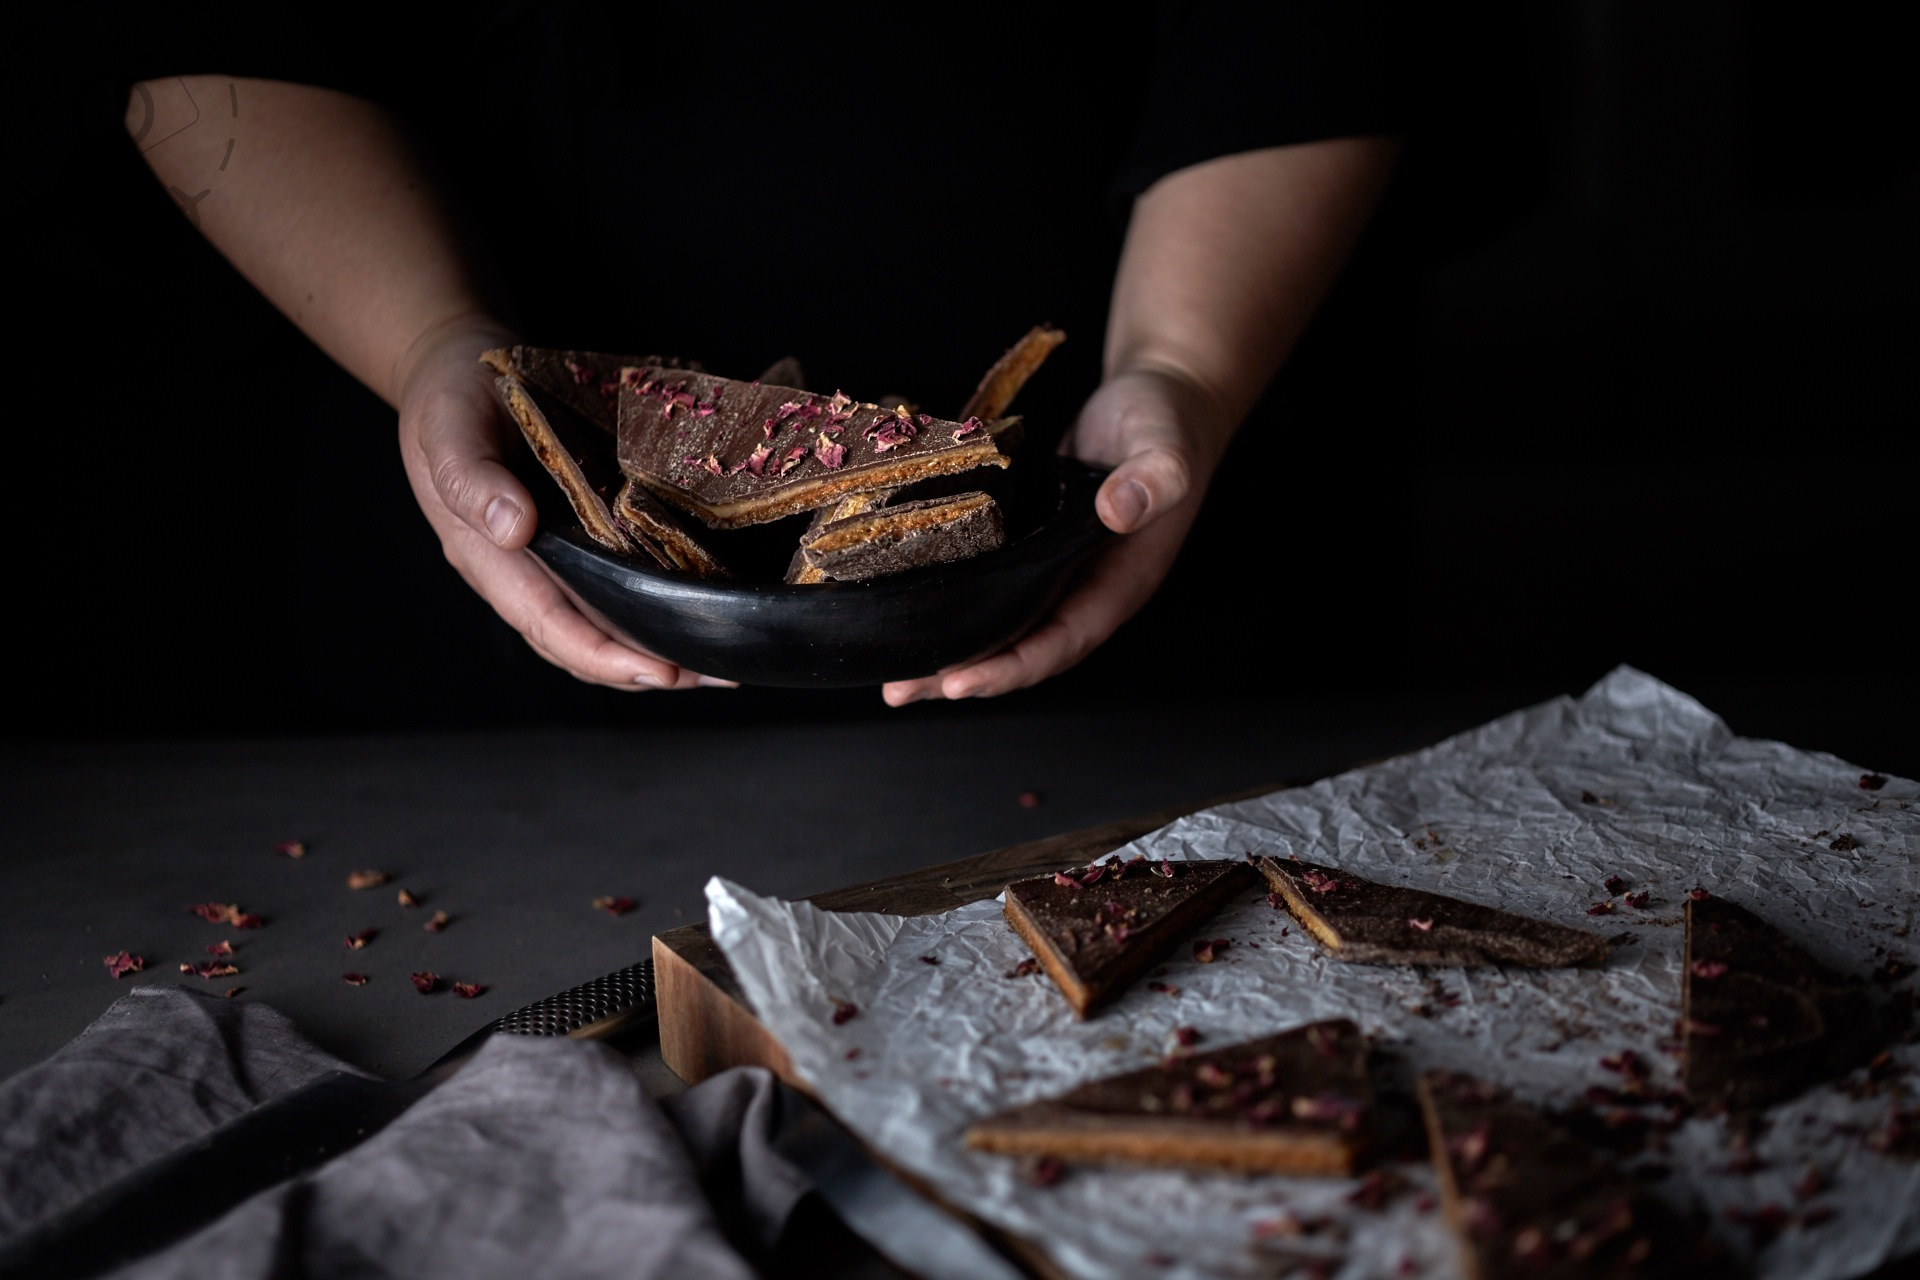 Dark and Moody Food Photography